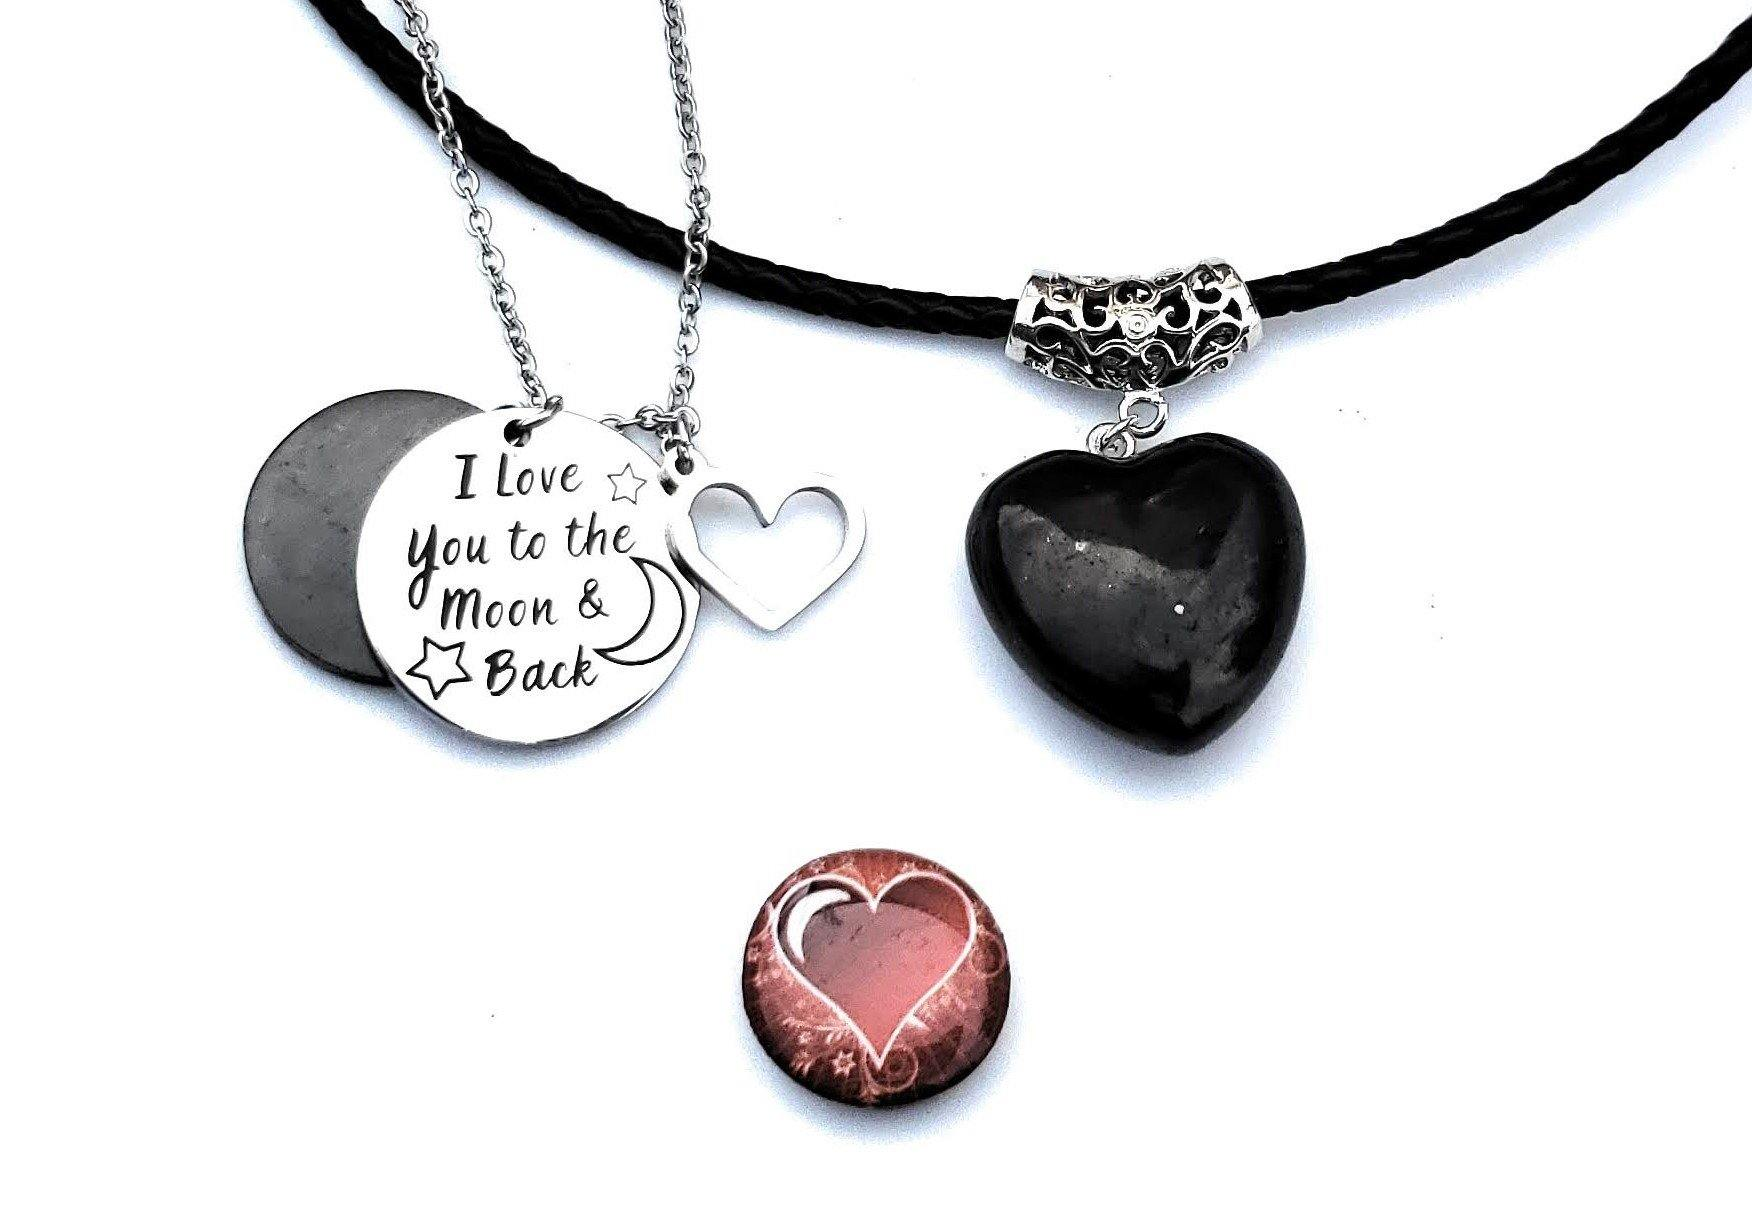 Shungite Bundle: From Our Heart - Bonus: Free Shungite Heart Cell Phone Disk - Karelia Creations